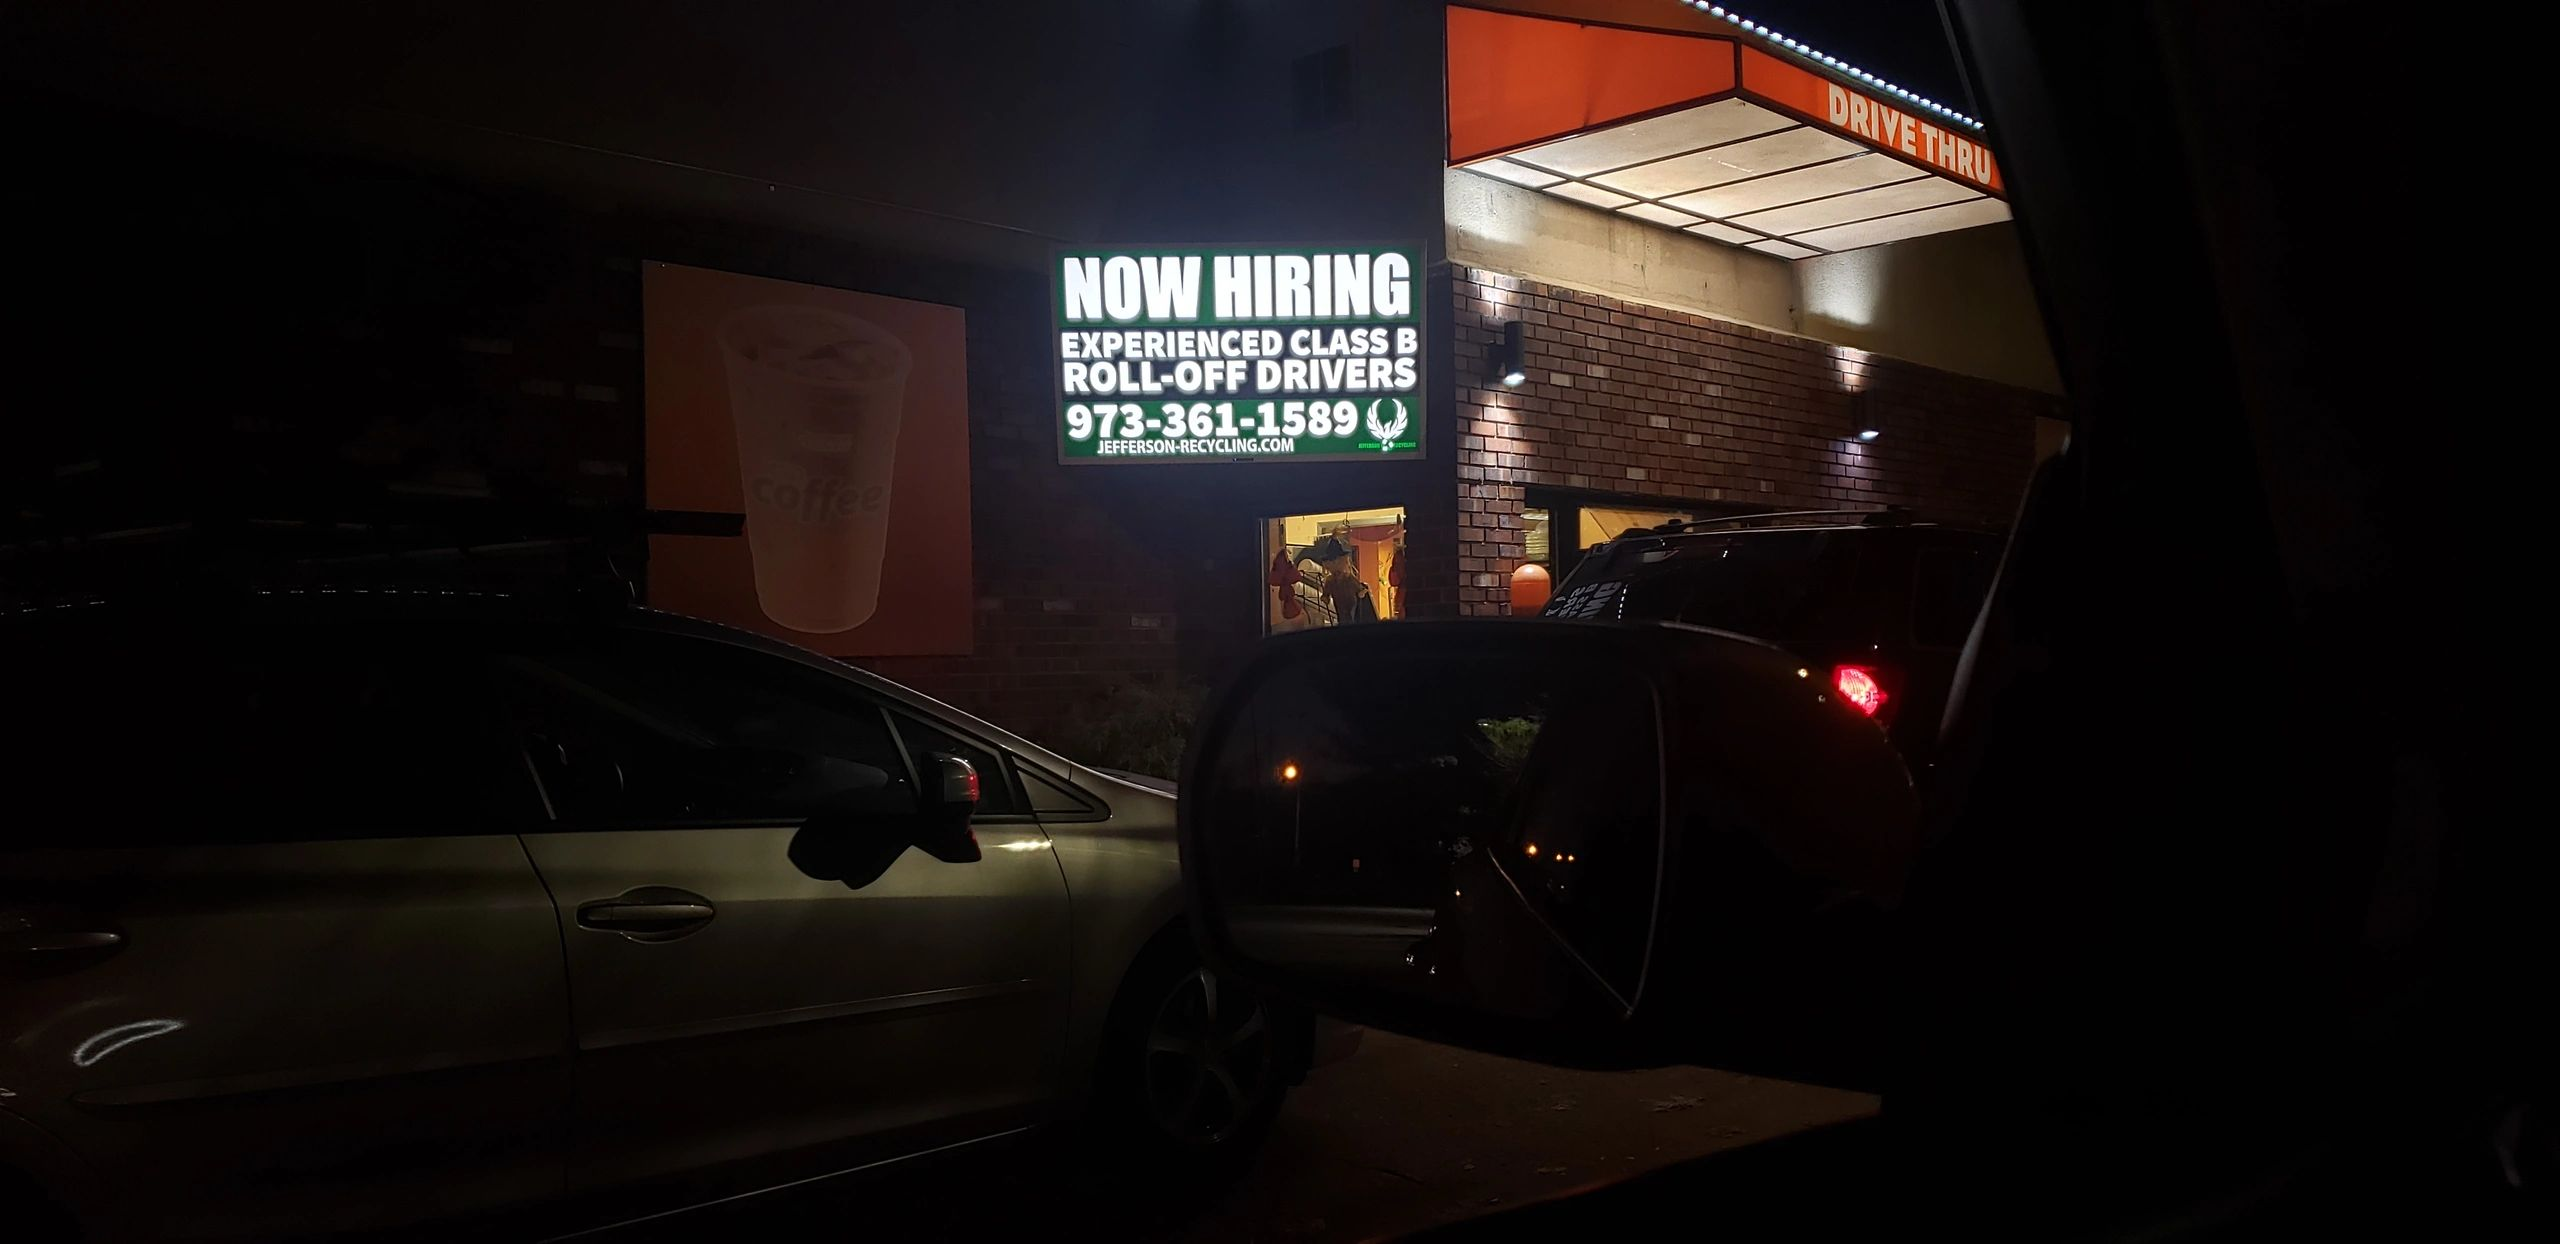 "{""blocks"":[{""key"":""d5sq5"",""text"":""DUNKIN DRIVE THRU RT 15 SOUTH LAKE HOPATCONG, NJ.  80'' 4K DISPLAY."",""type"":""unstyled"",""depth"":0,""inlineStyleRanges"":[],""entityRanges"":[],""data"":{}}],""entityMap"":{}}"